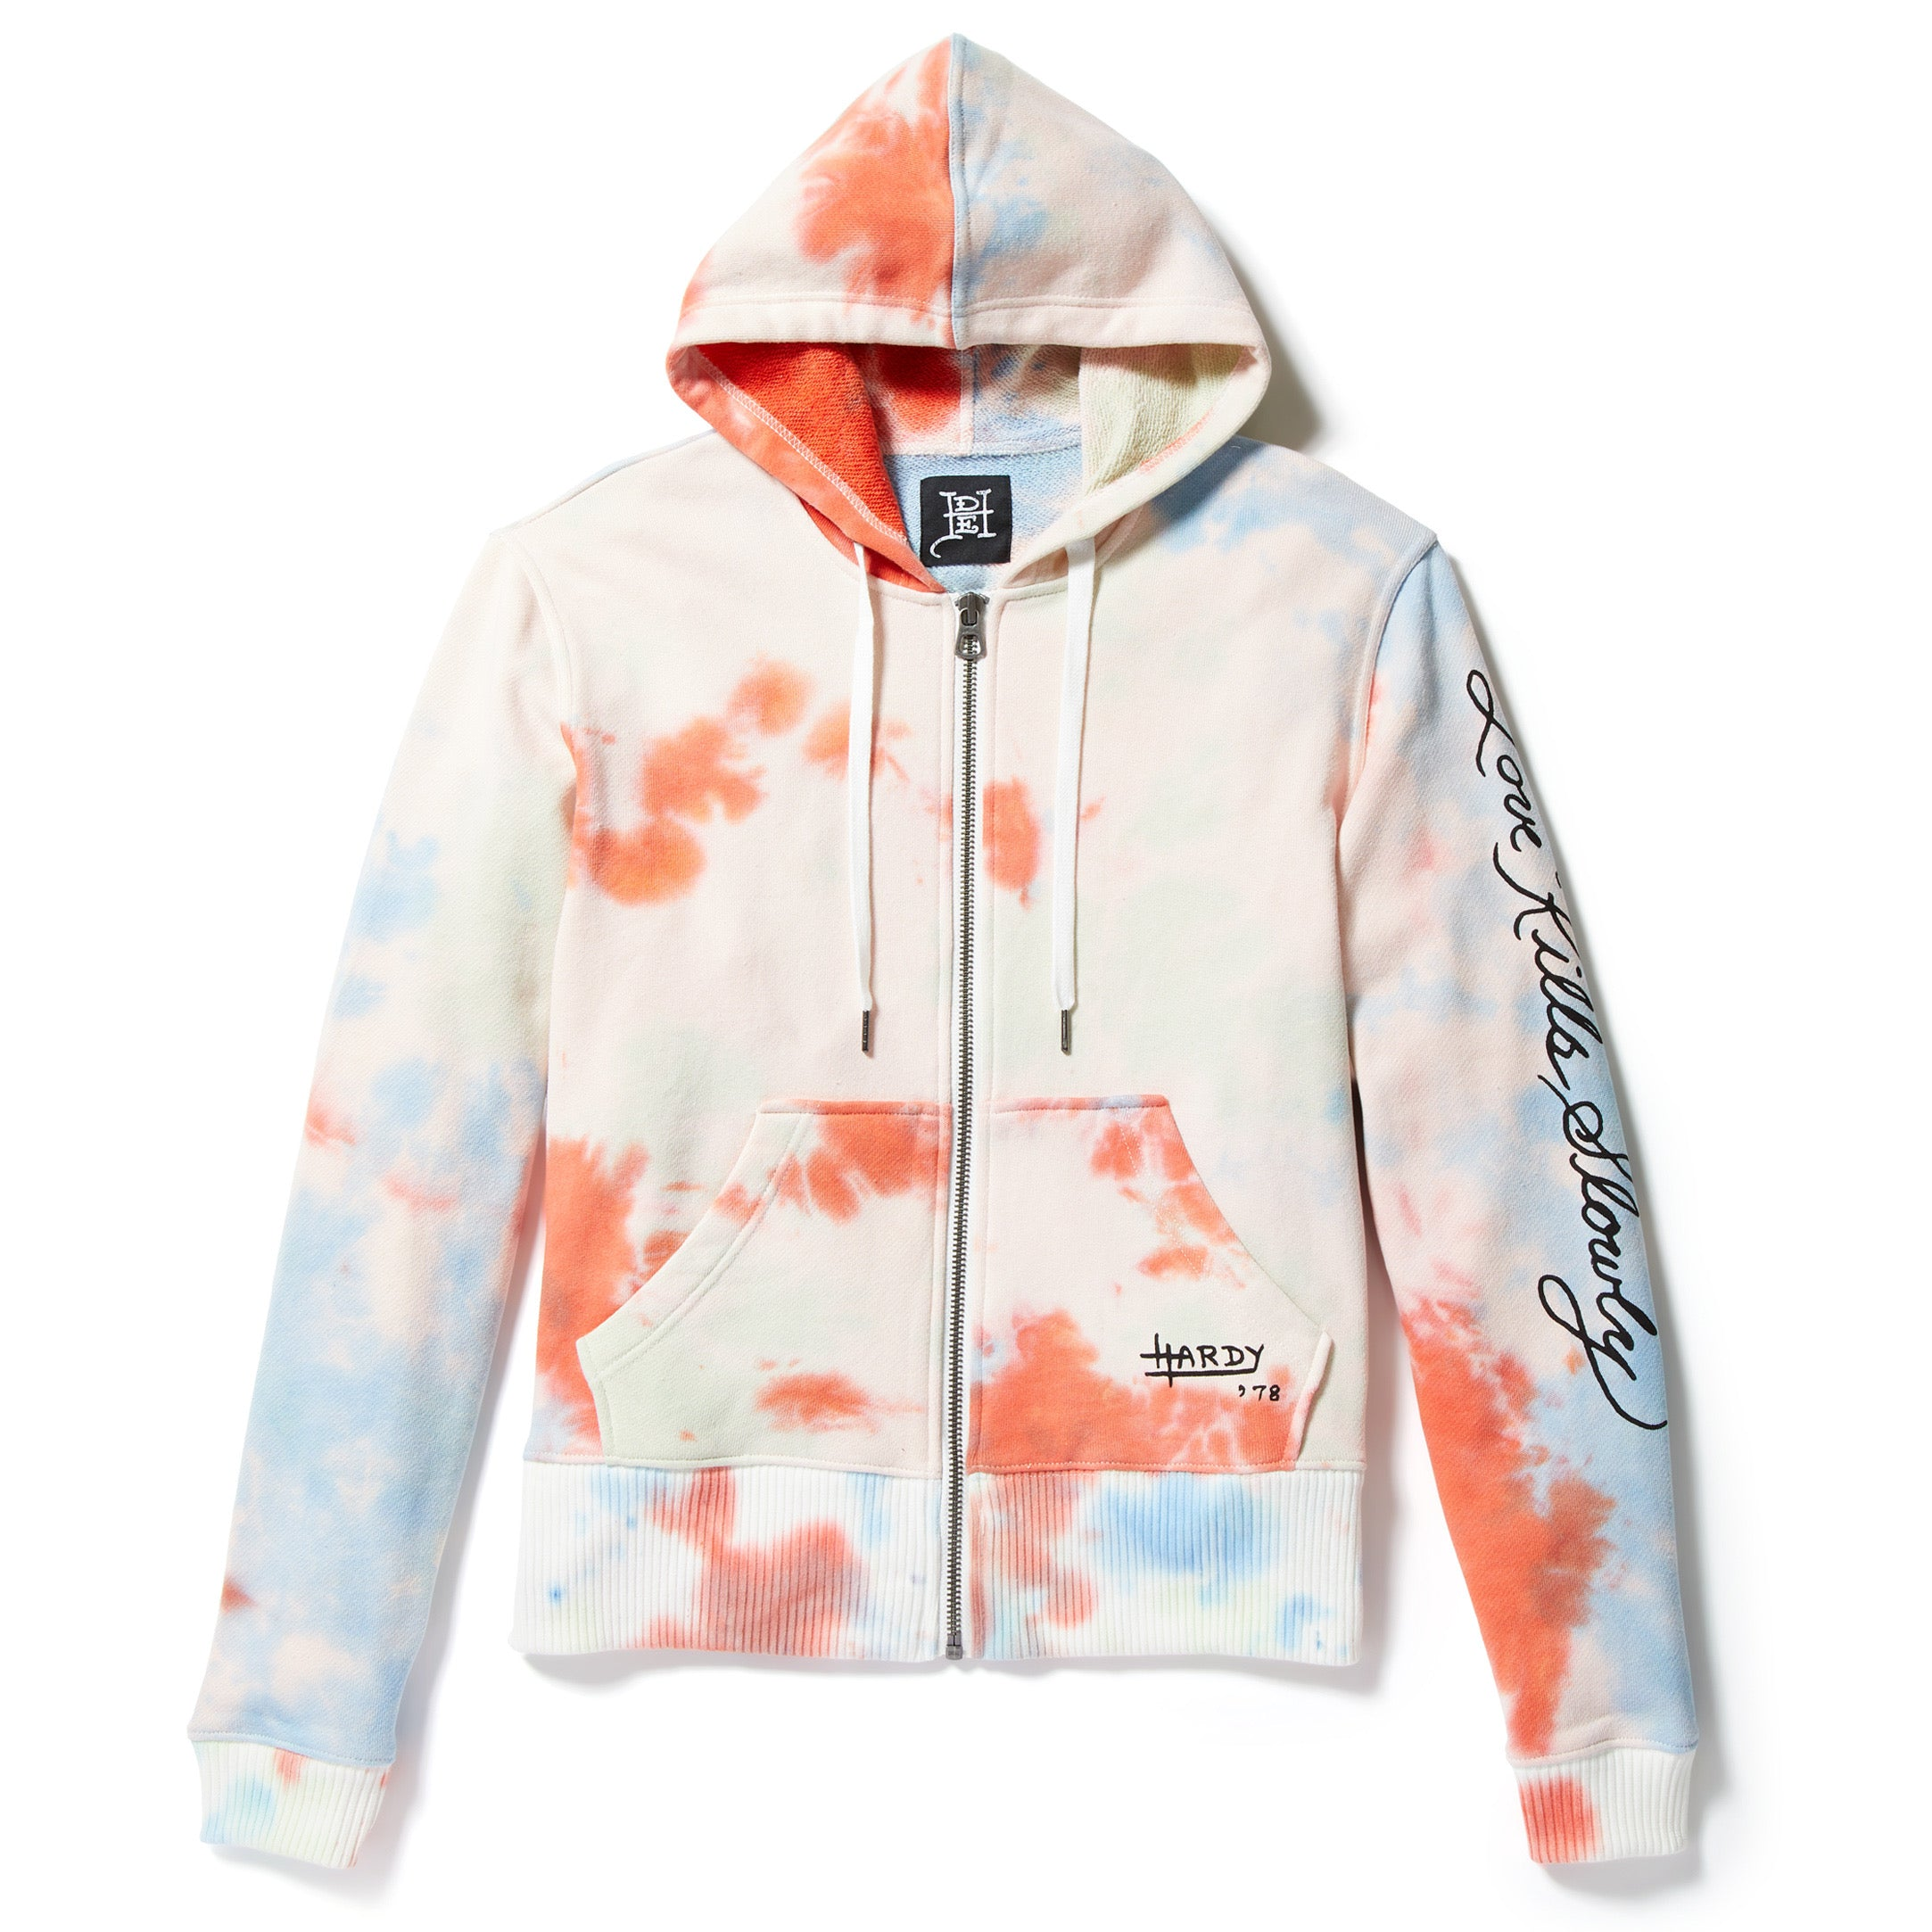 Panther and Roses Tie-Dye Zip up Hoodie